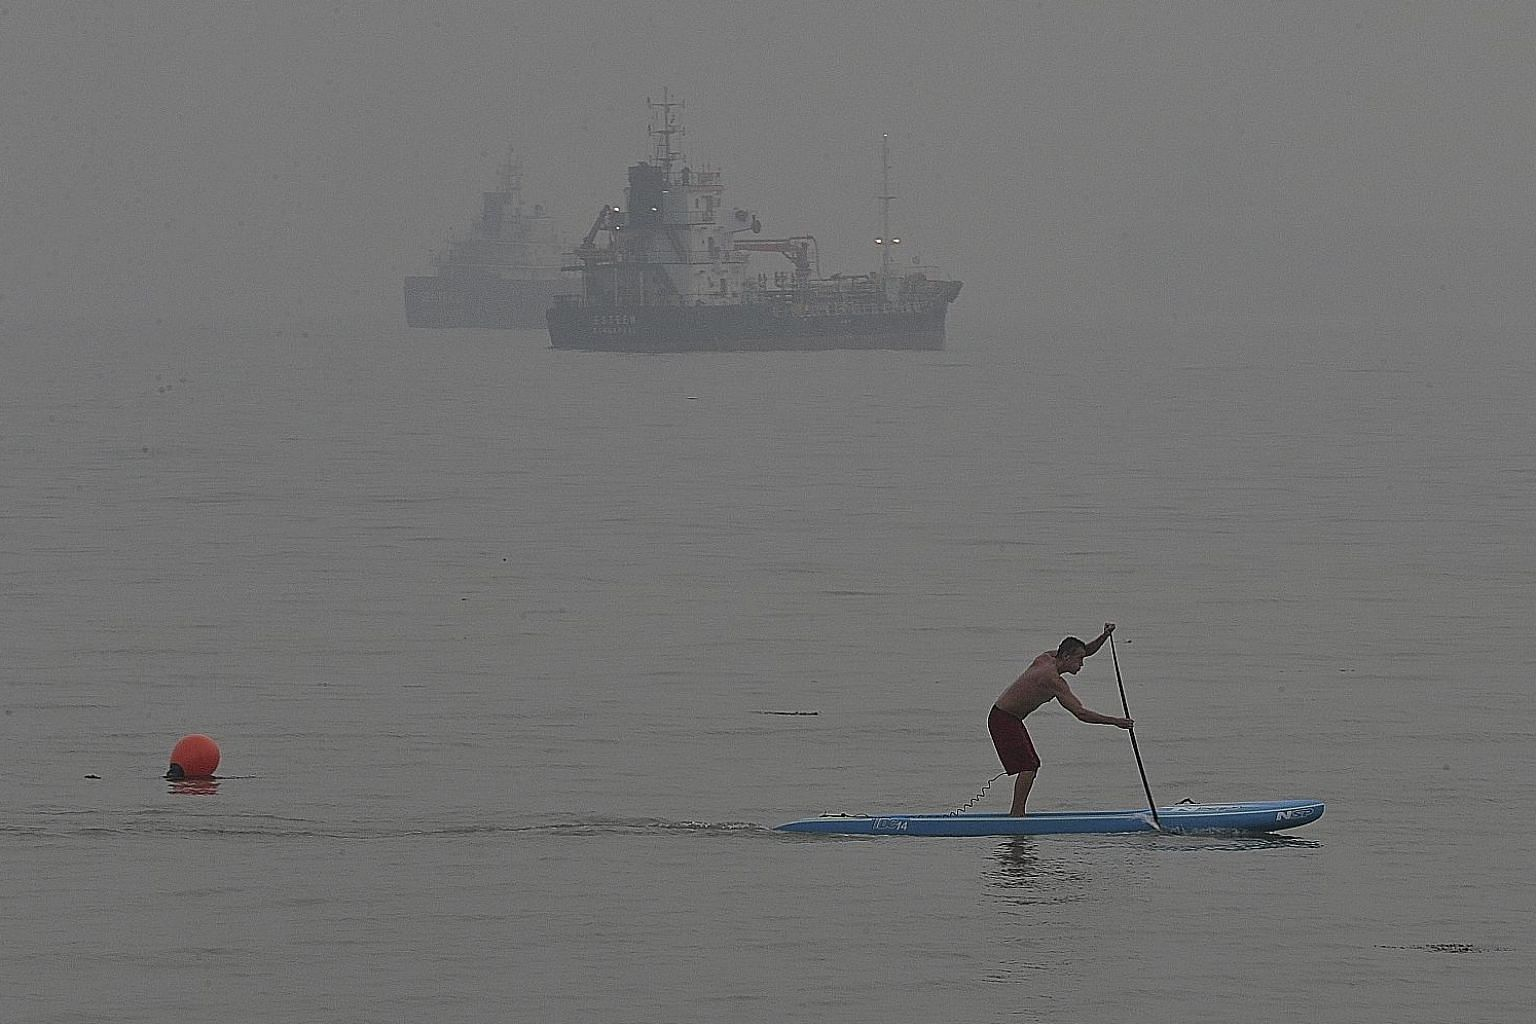 A man, undeterred by the air quality, riding on a paddle board at East Coast Park as the haze partly obscured ships in the distance at around 6pm on Sept 30, 2015.